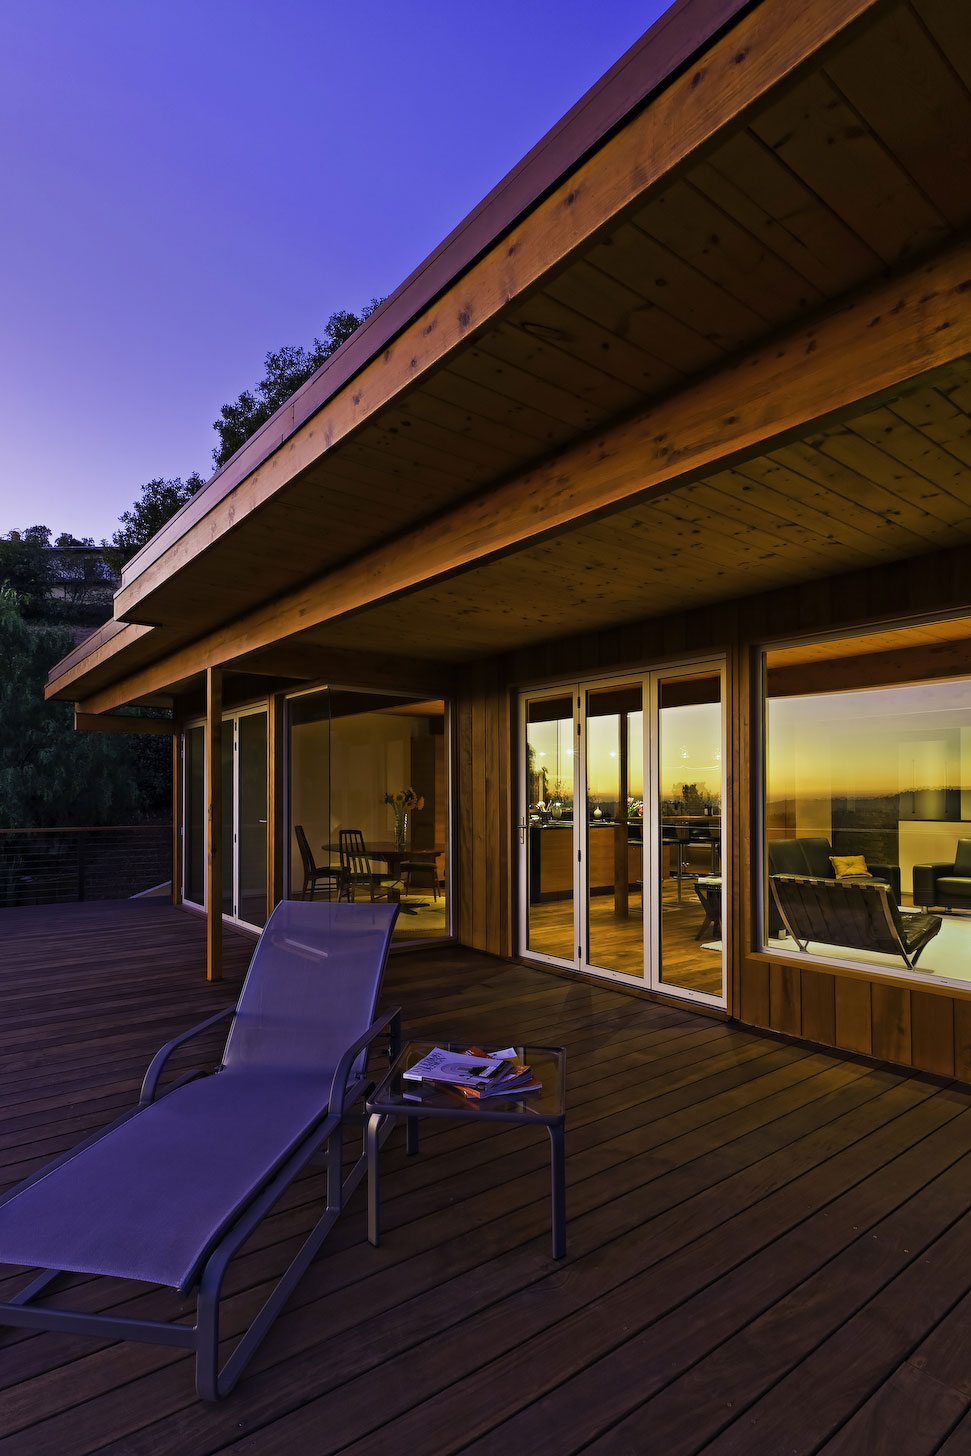 Patio Doors, Wooden Balcony, Mid-Century Modern Home in Santa Barbara, California